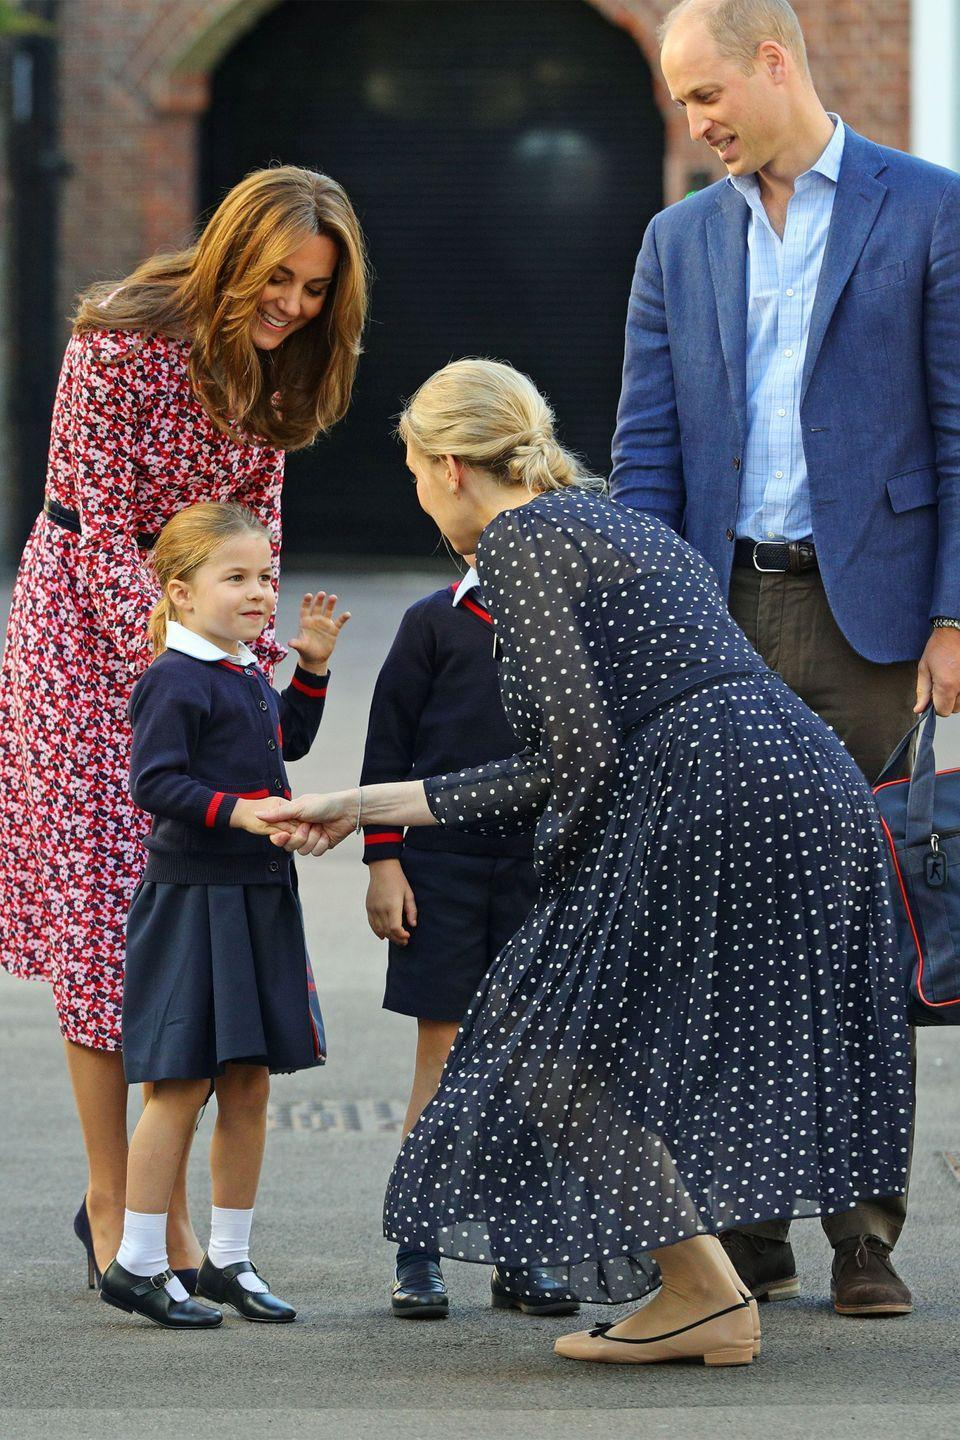 <p>Prince William and Kate watch as Princess Charlotte makes introductions.</p>